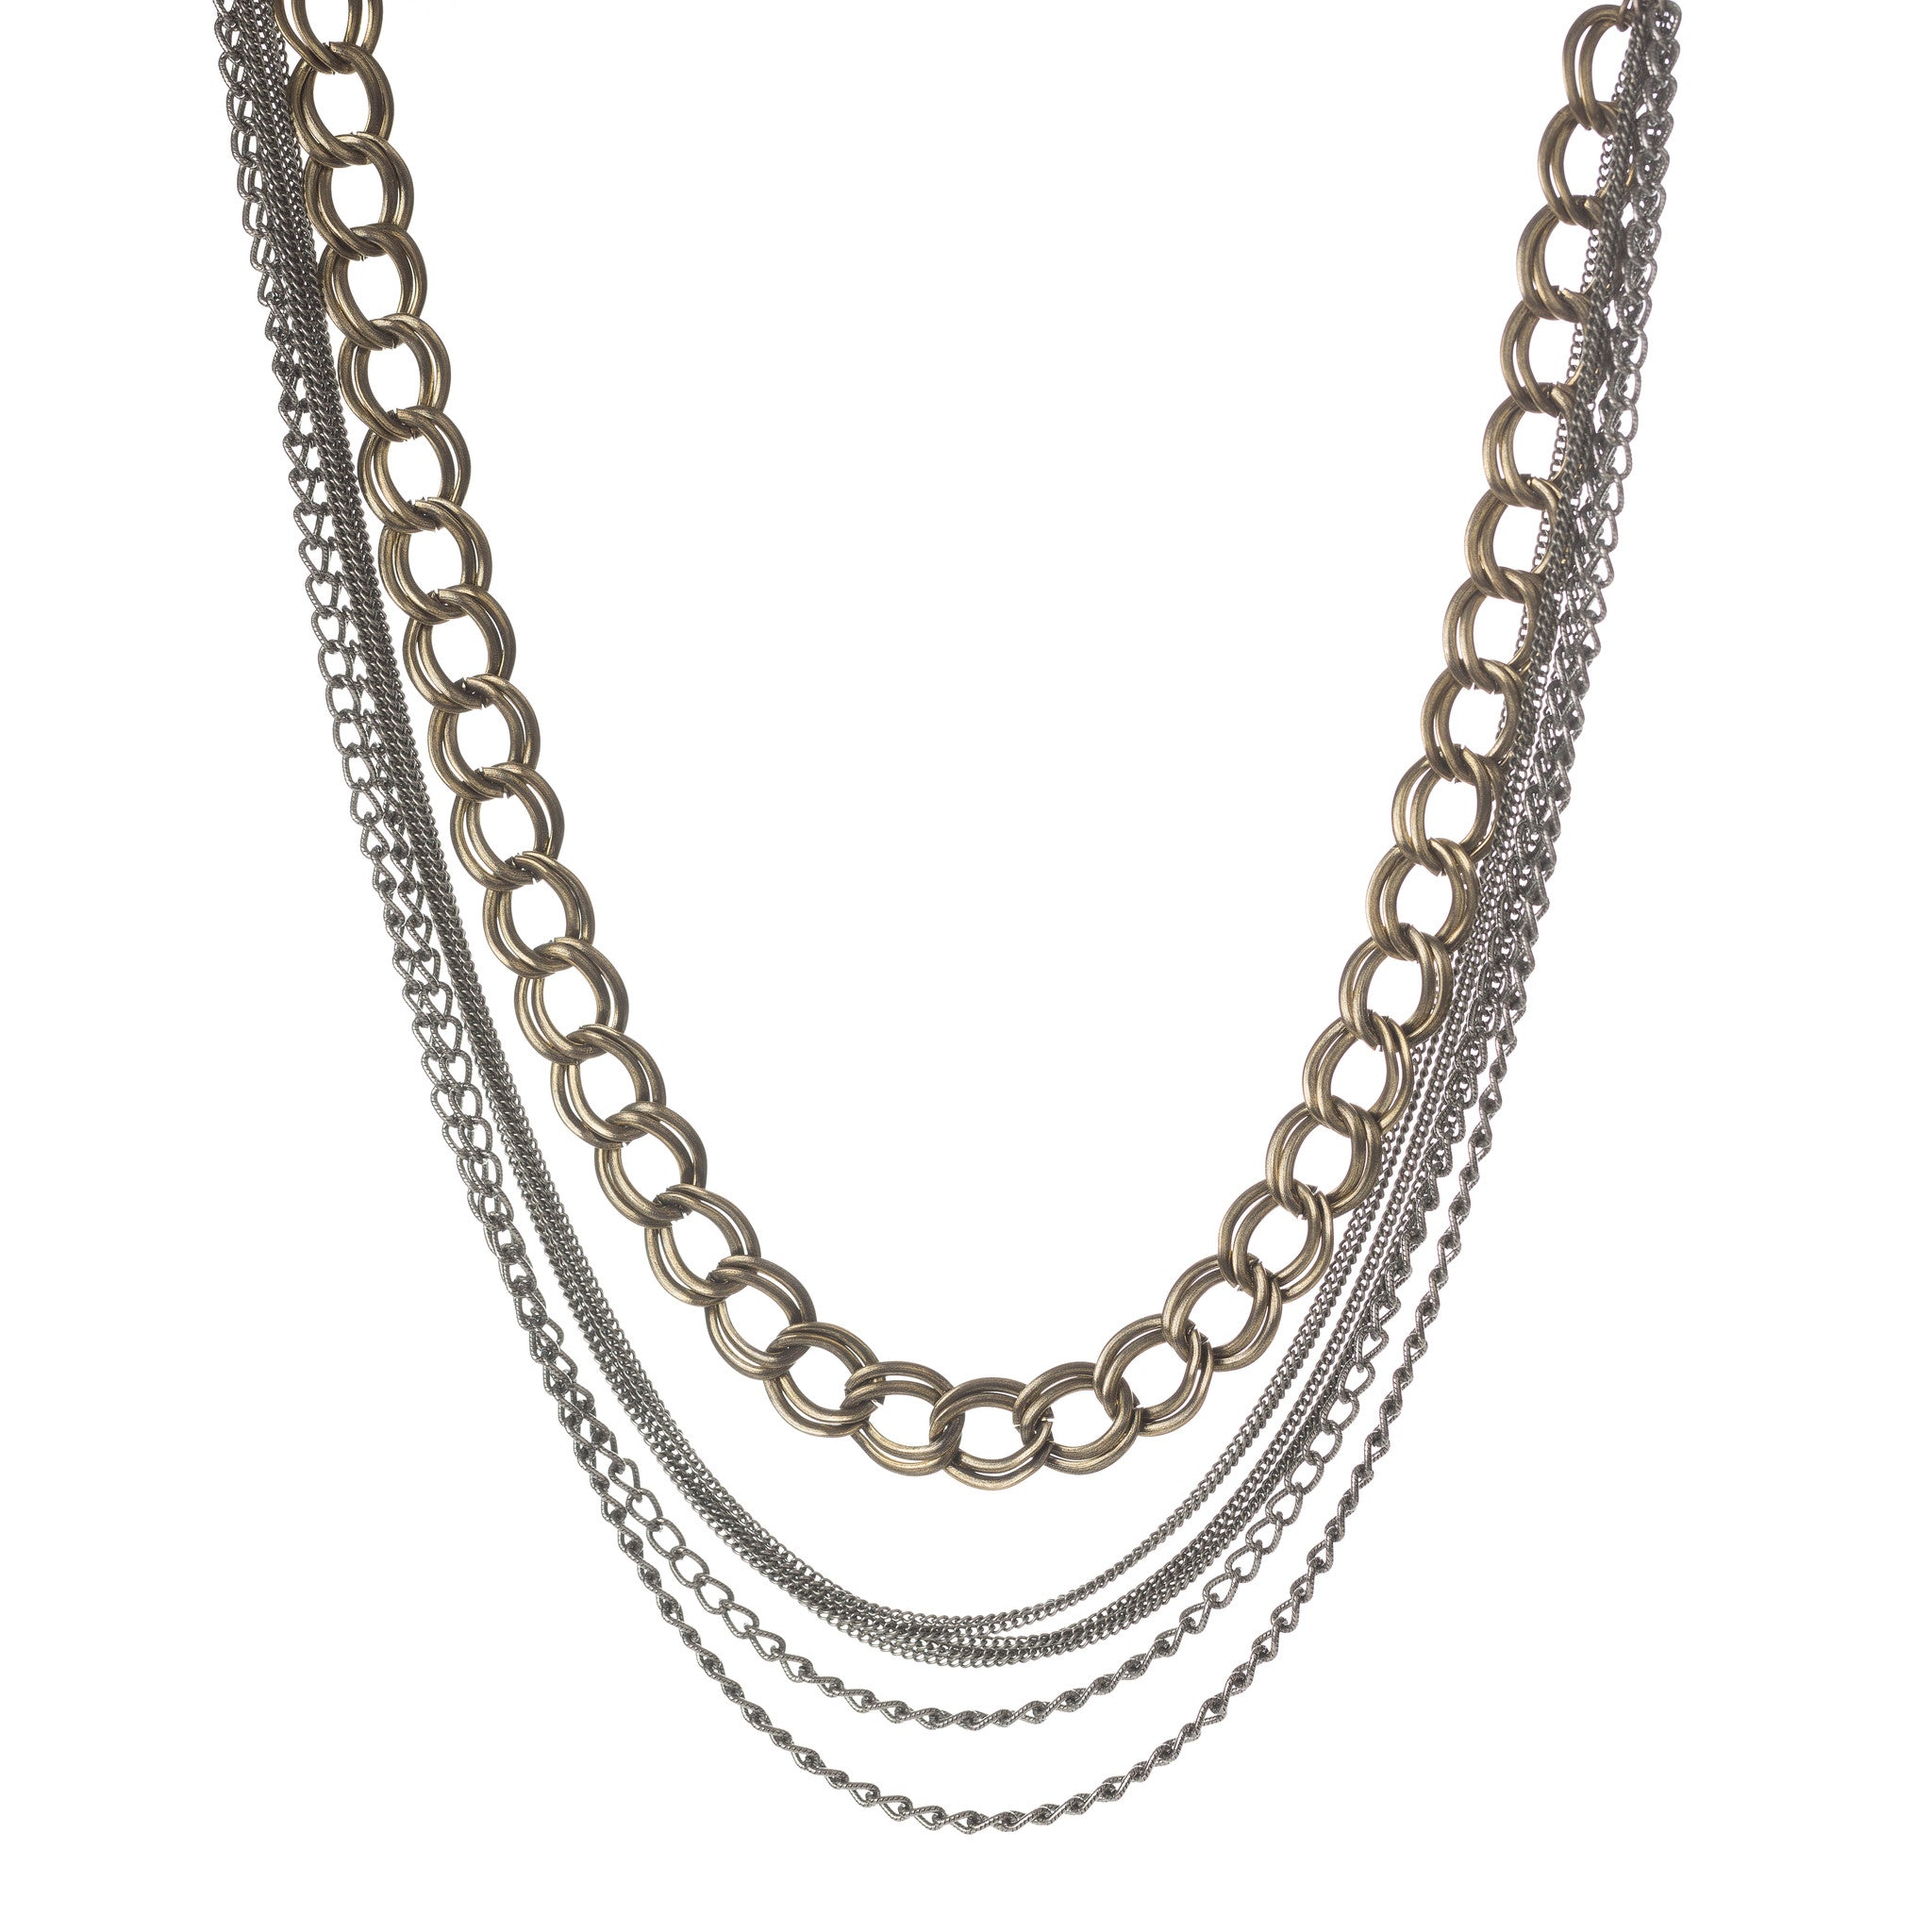 MIXED METAL STATEMENT NECKLACE